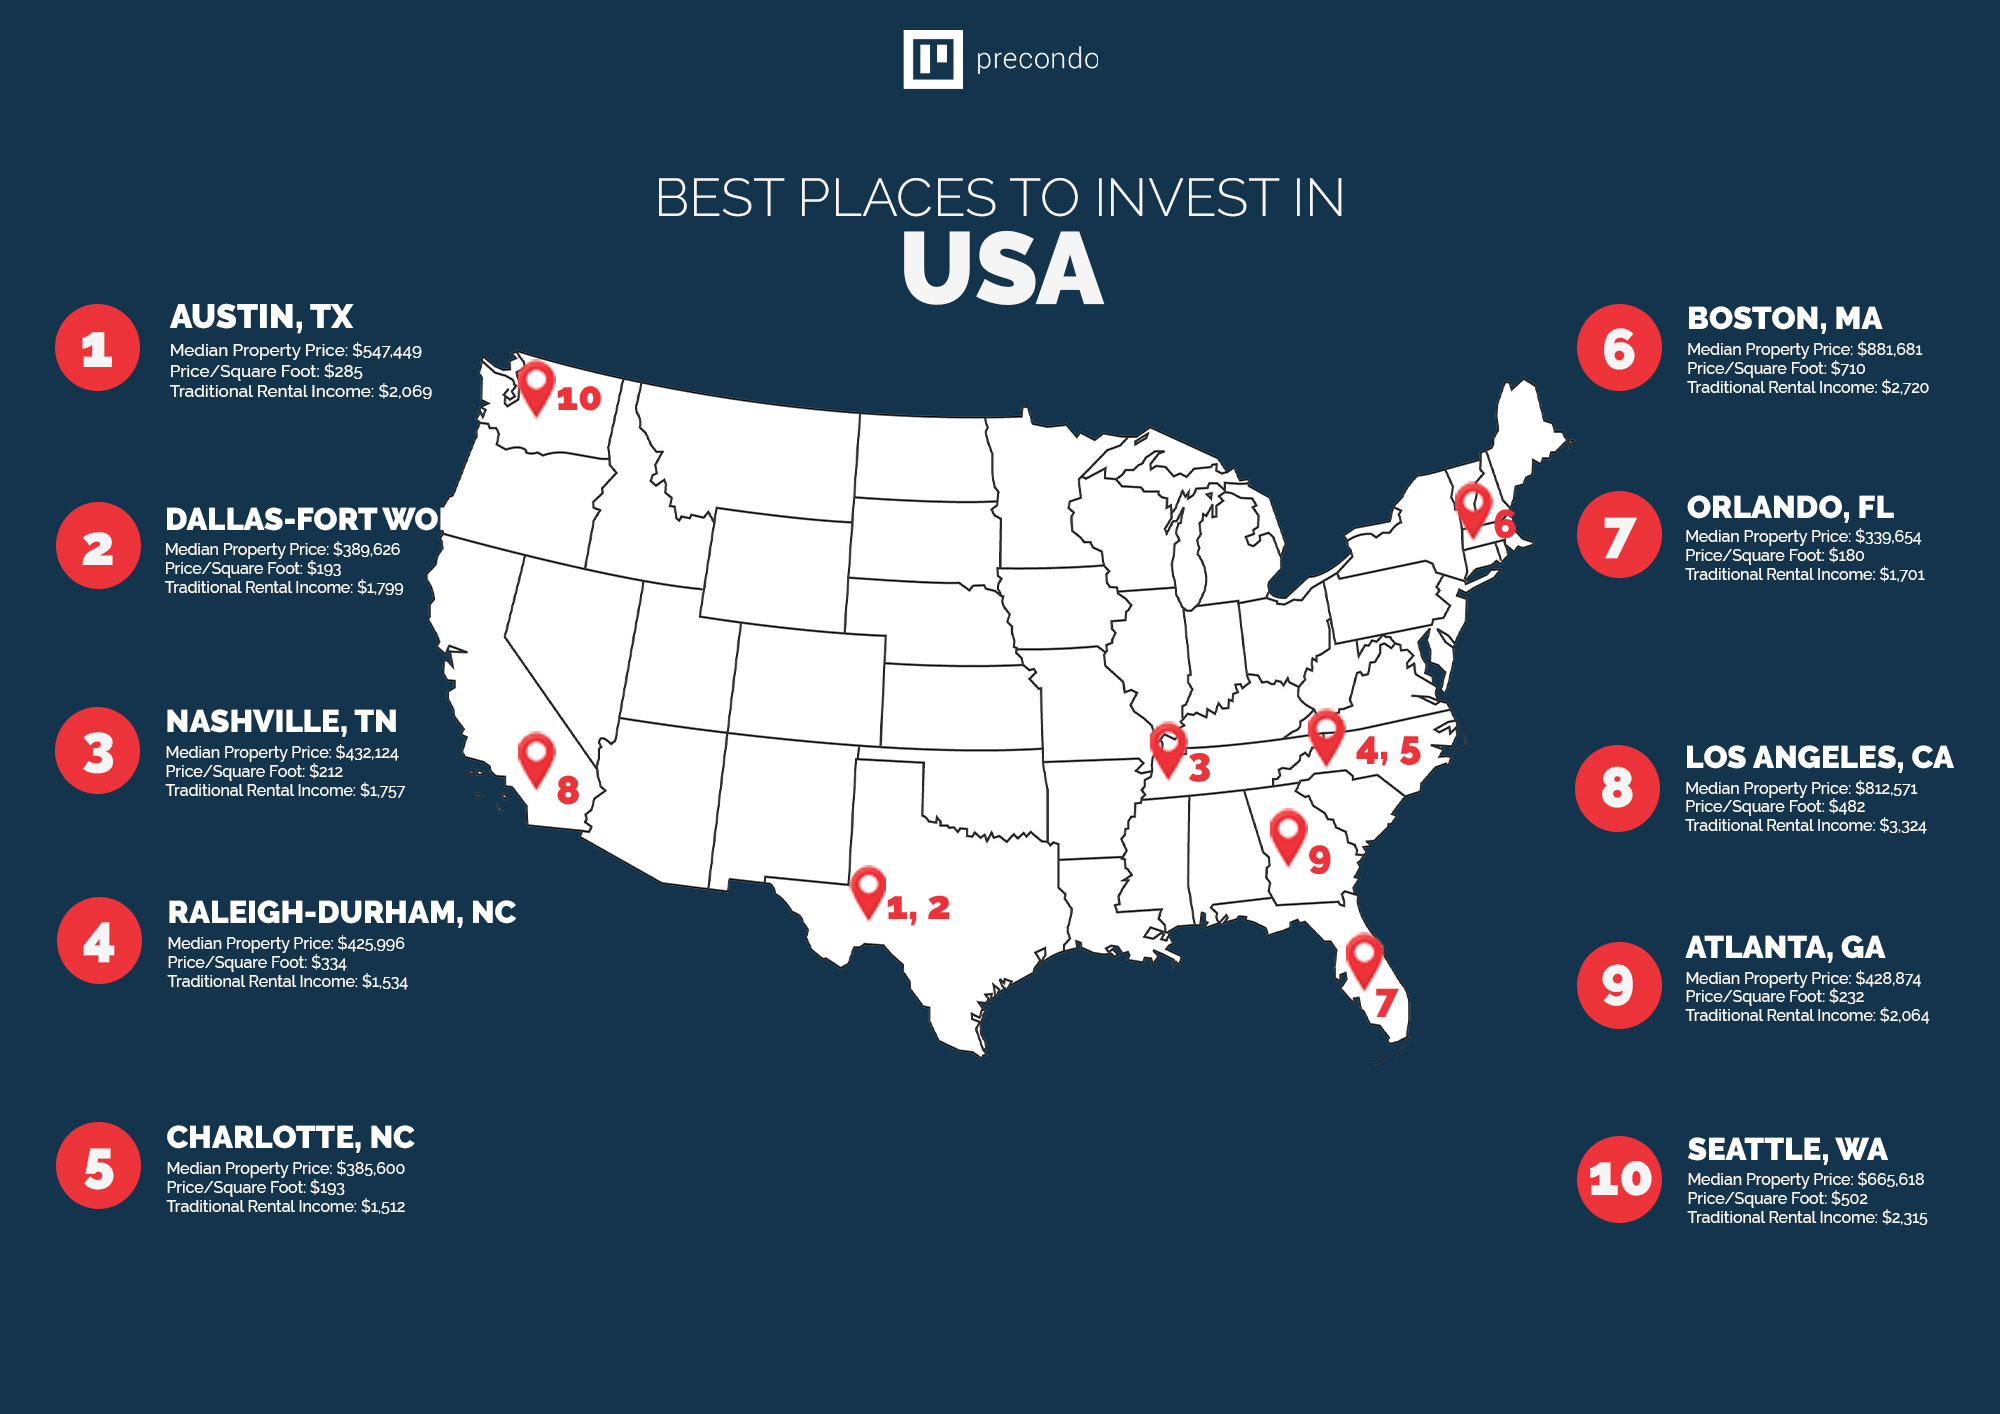 Best places to invest in usa